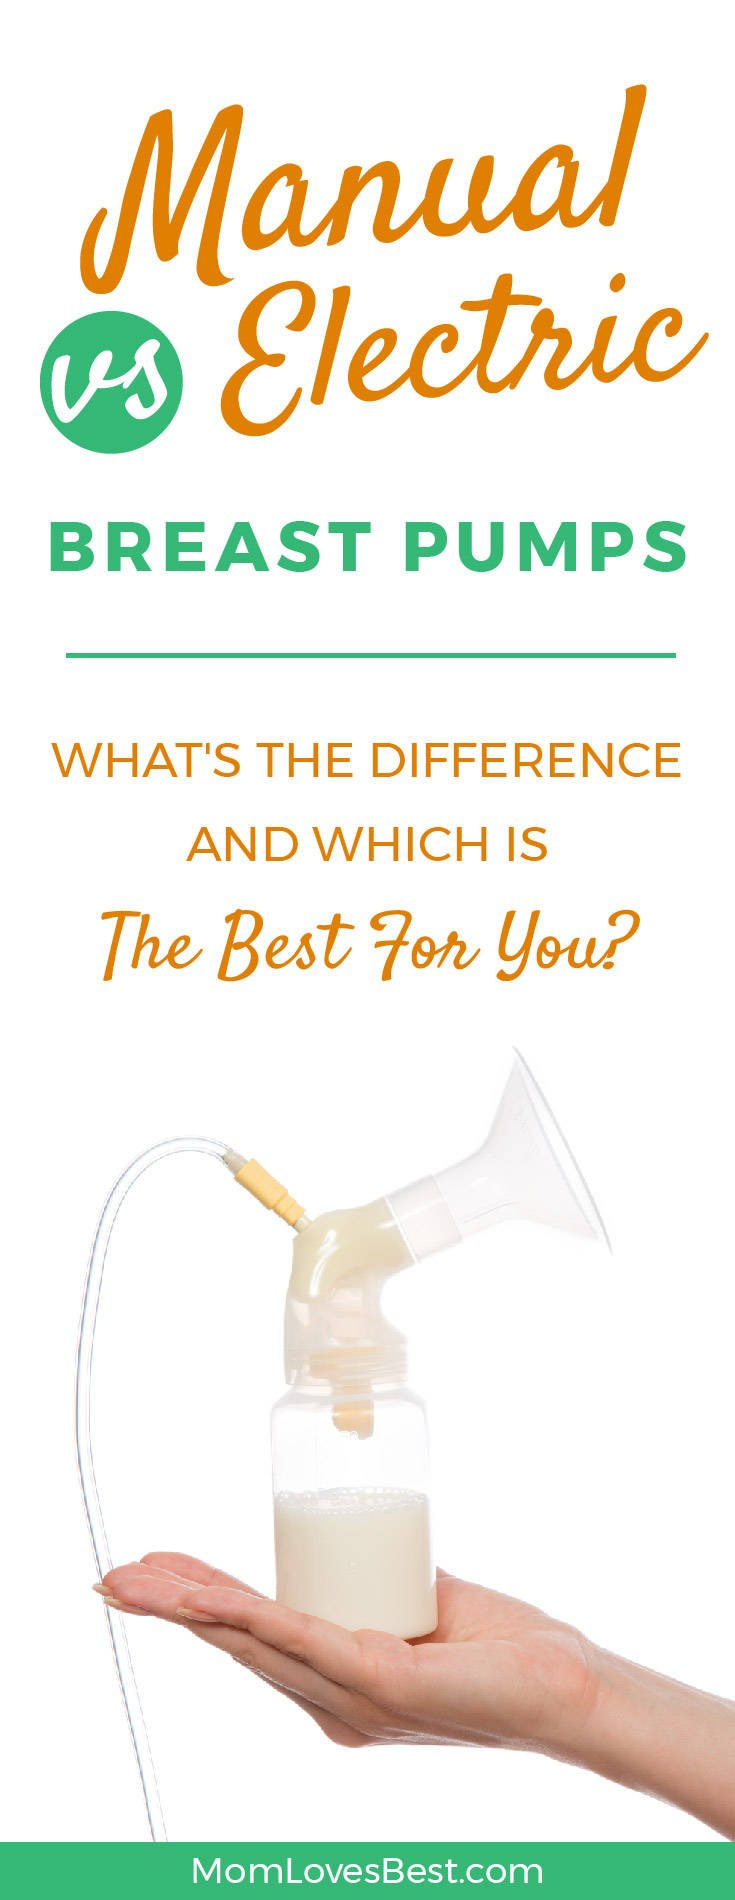 You know you want to breastfeed, but you aren't sure what type of breast pump you need – manual or electric. Before you can decide which type to buy, you need to figure out how often you'll be using it. The manual vs electric breast pump question requires careful consideration of several factors. Click here to learn if you should choose a manual, or an electric breast pump: https://momlovesbest.com/feeding/breast-pumps/manual-vs-electric #breastfeeding #BreastPump #momlife #motherhood